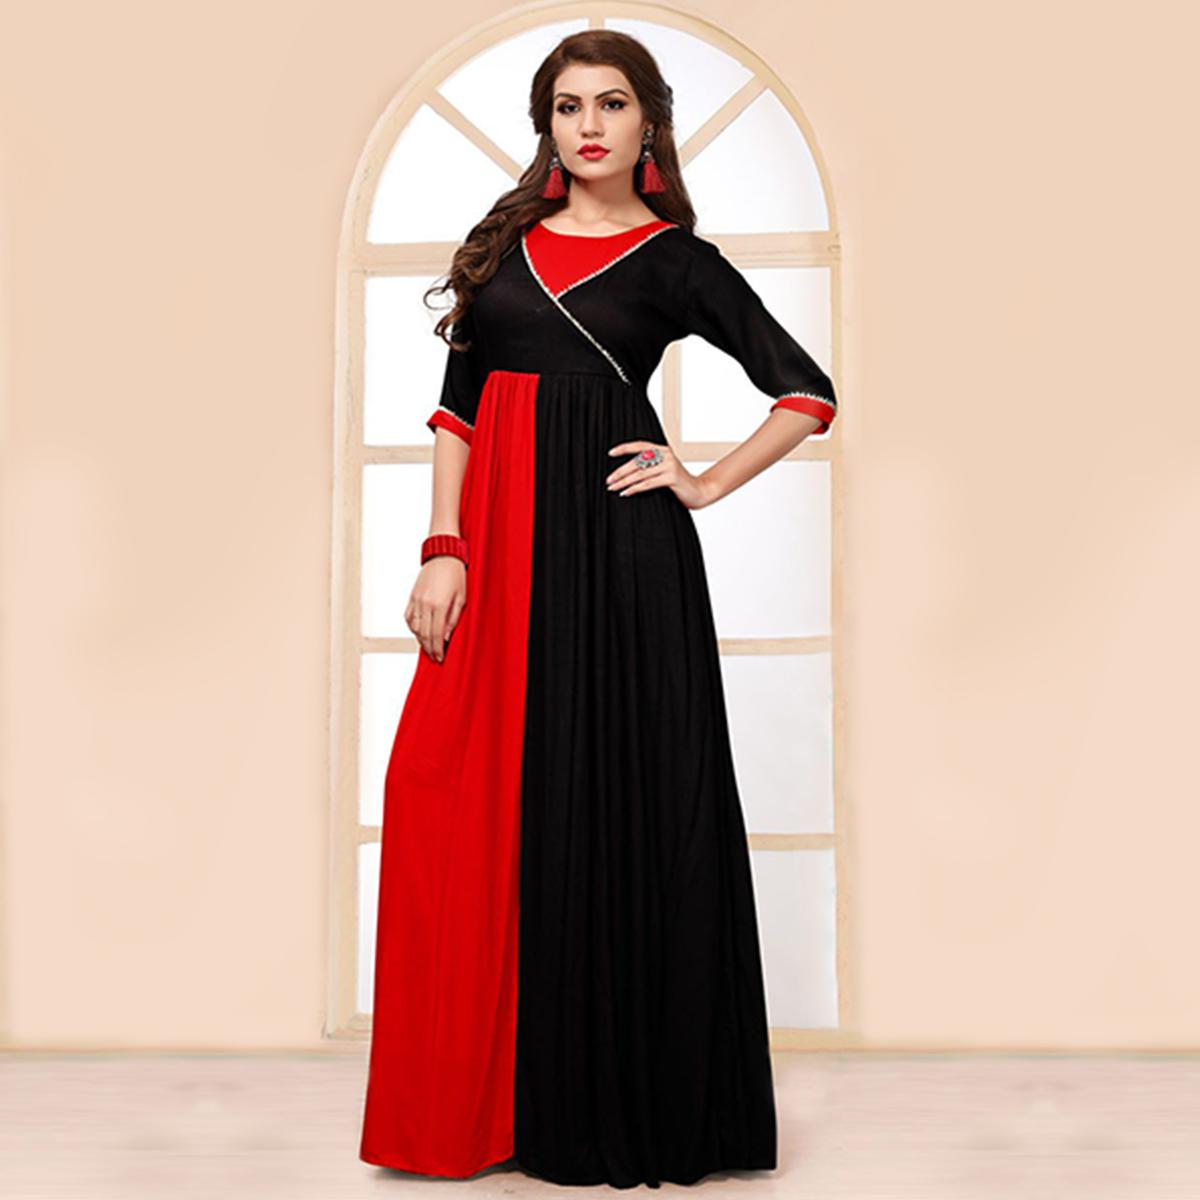 Ravishing Black-Red Colored Party Wear Fancy Heavy Rayon Kurti